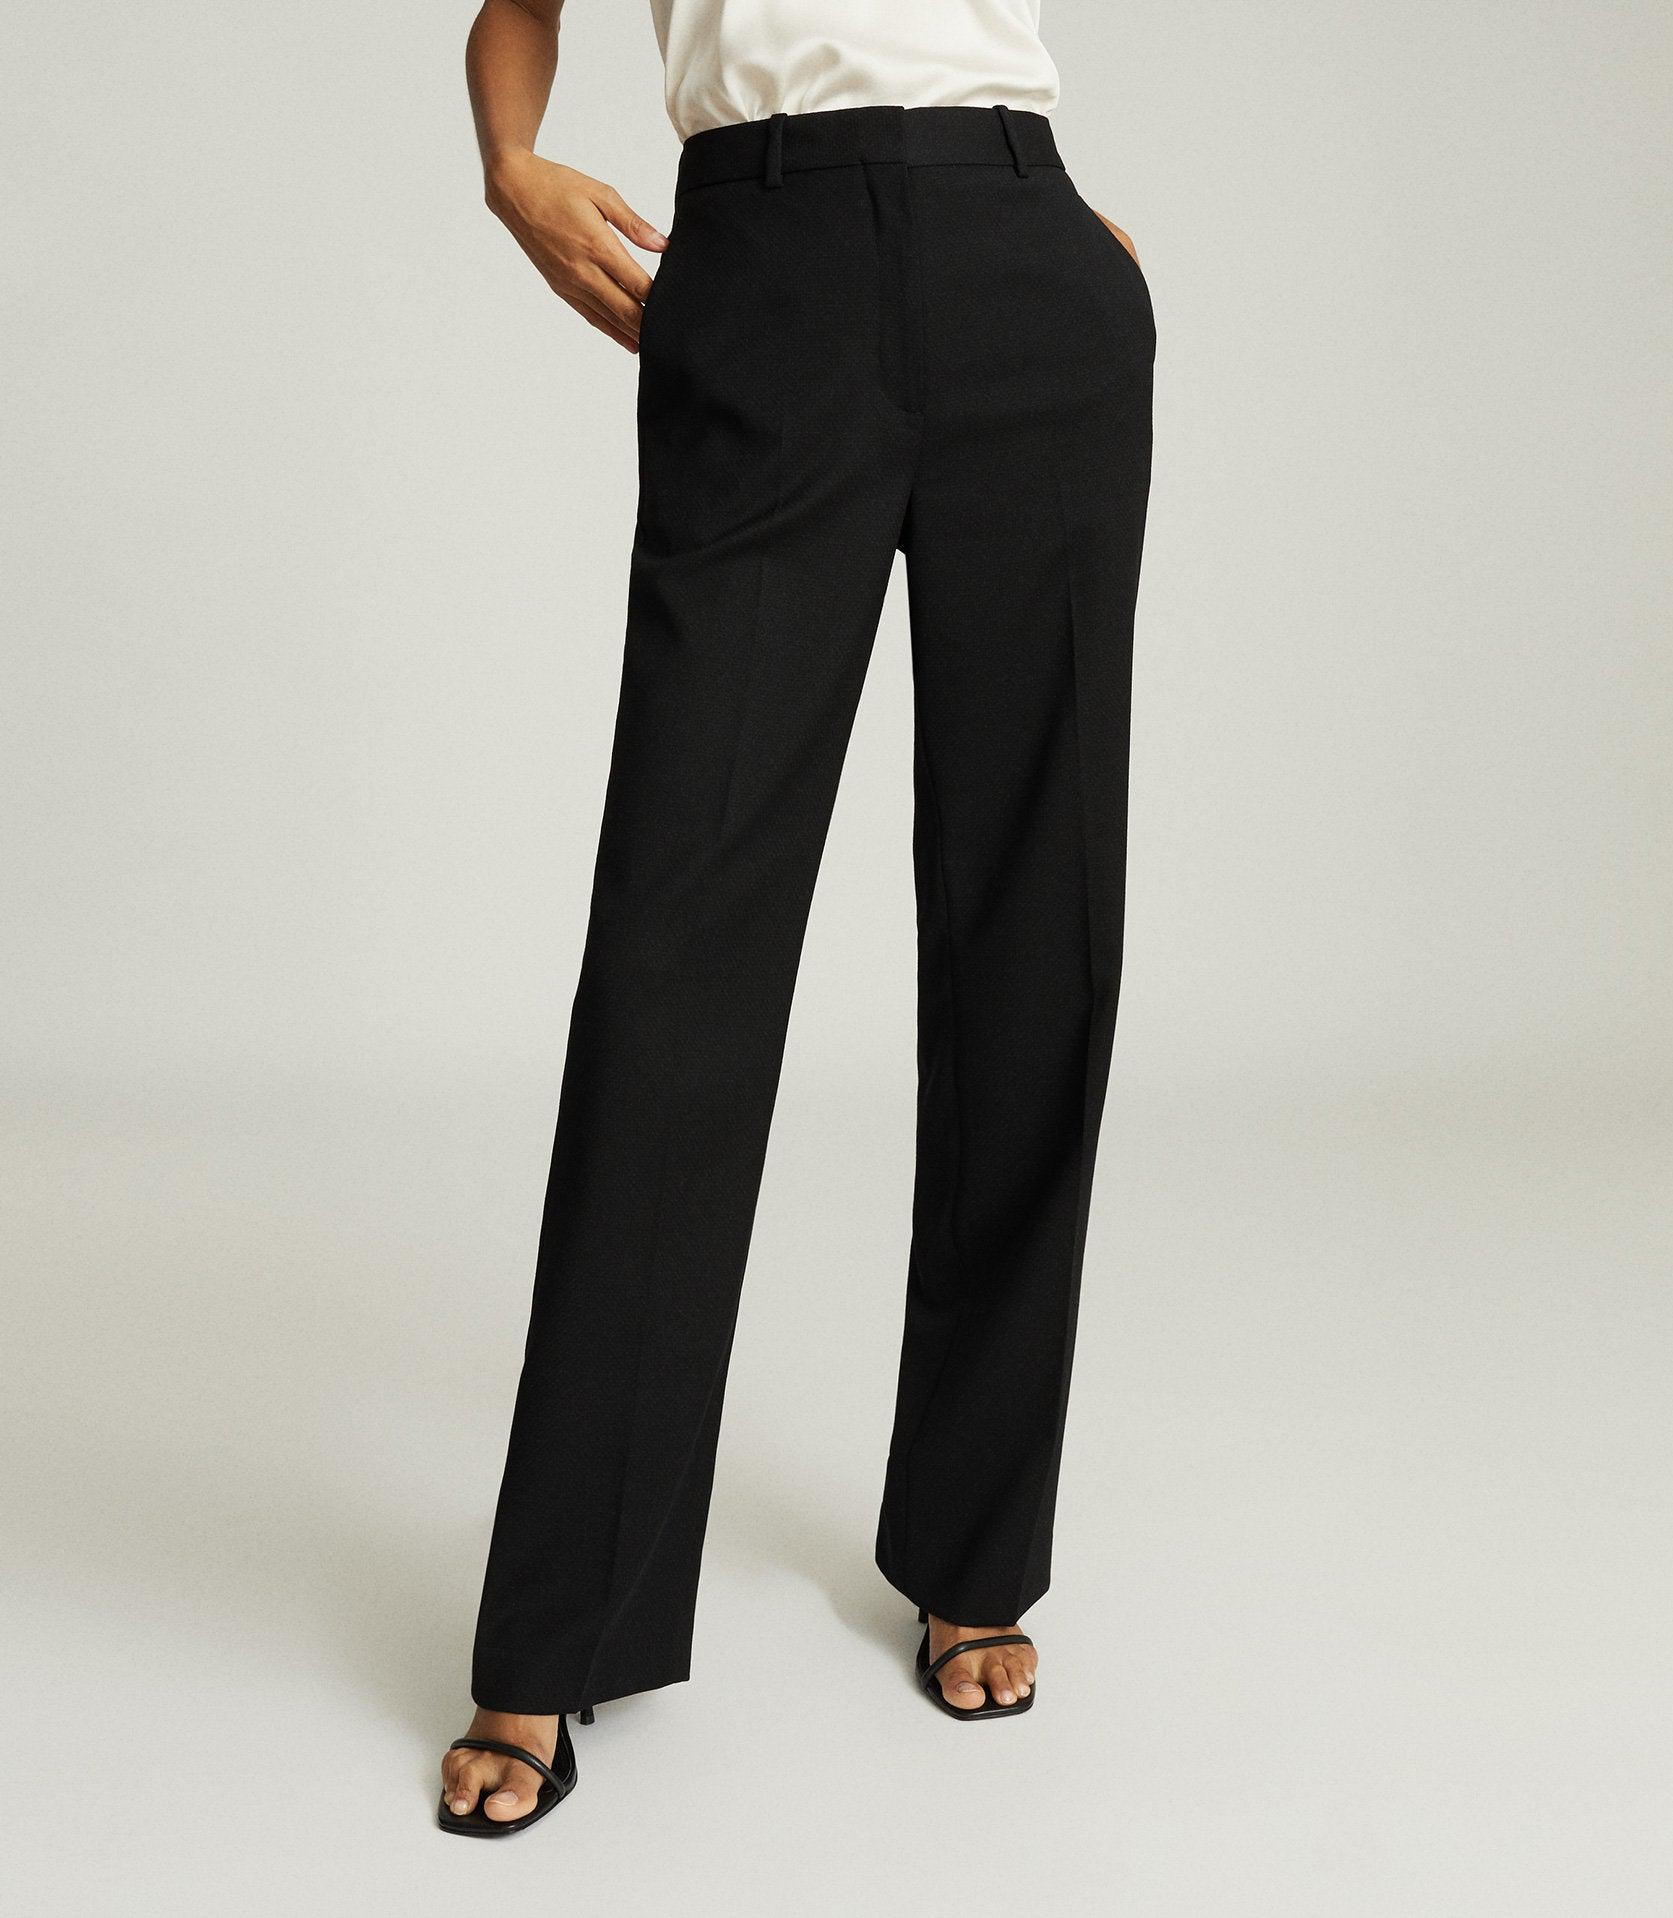 HAYES - WIDE LEG TAILORED PANTS 1